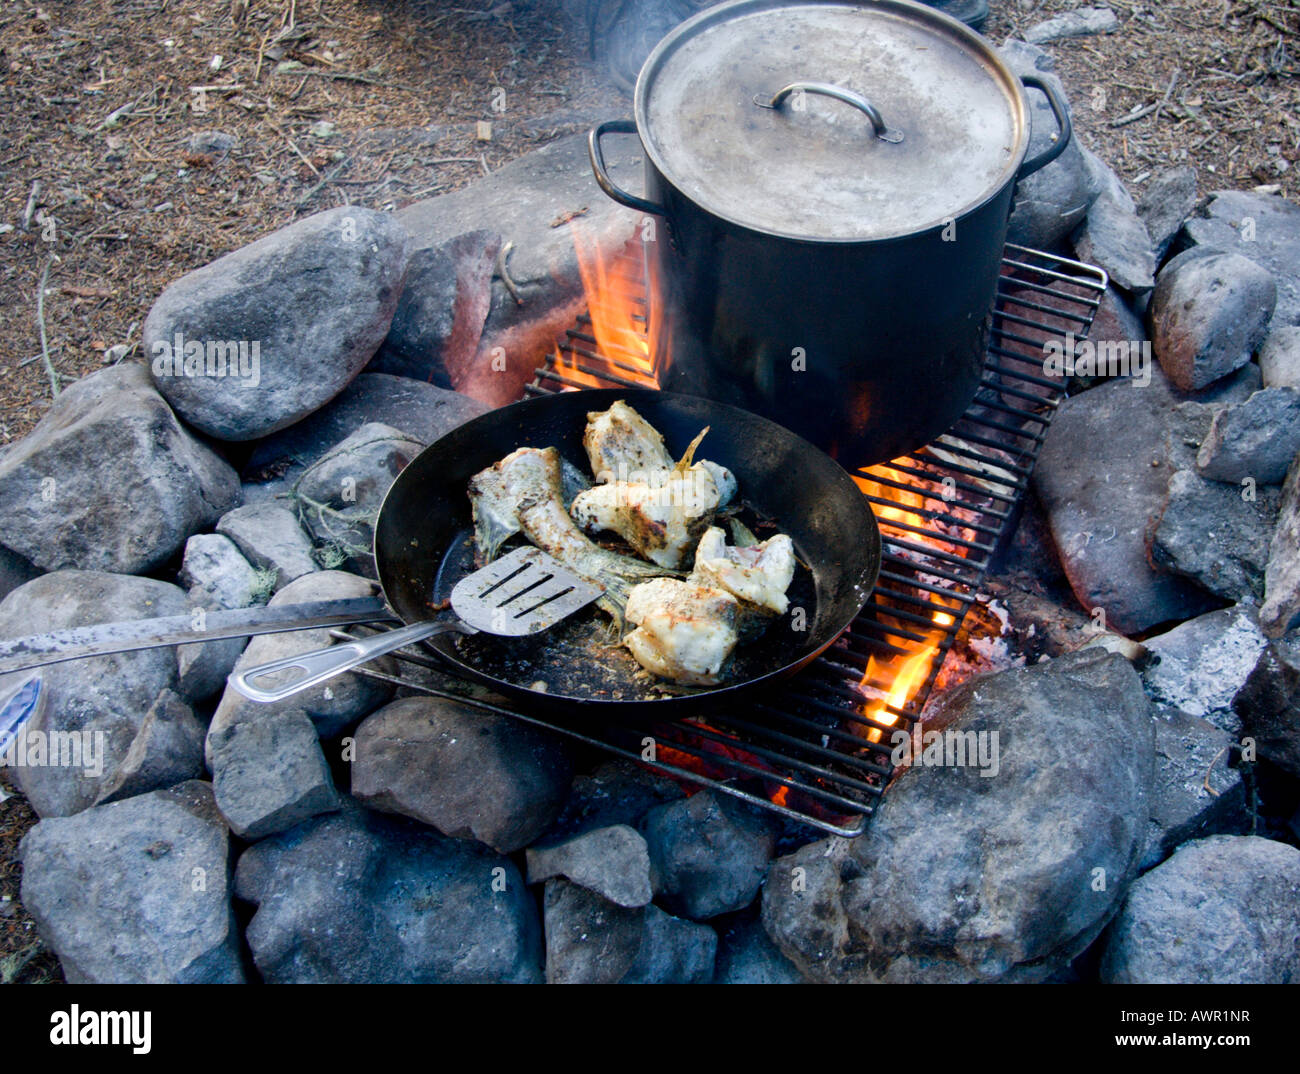 Cooking And Frying Fish Over Campfire Yukon Territory Canada